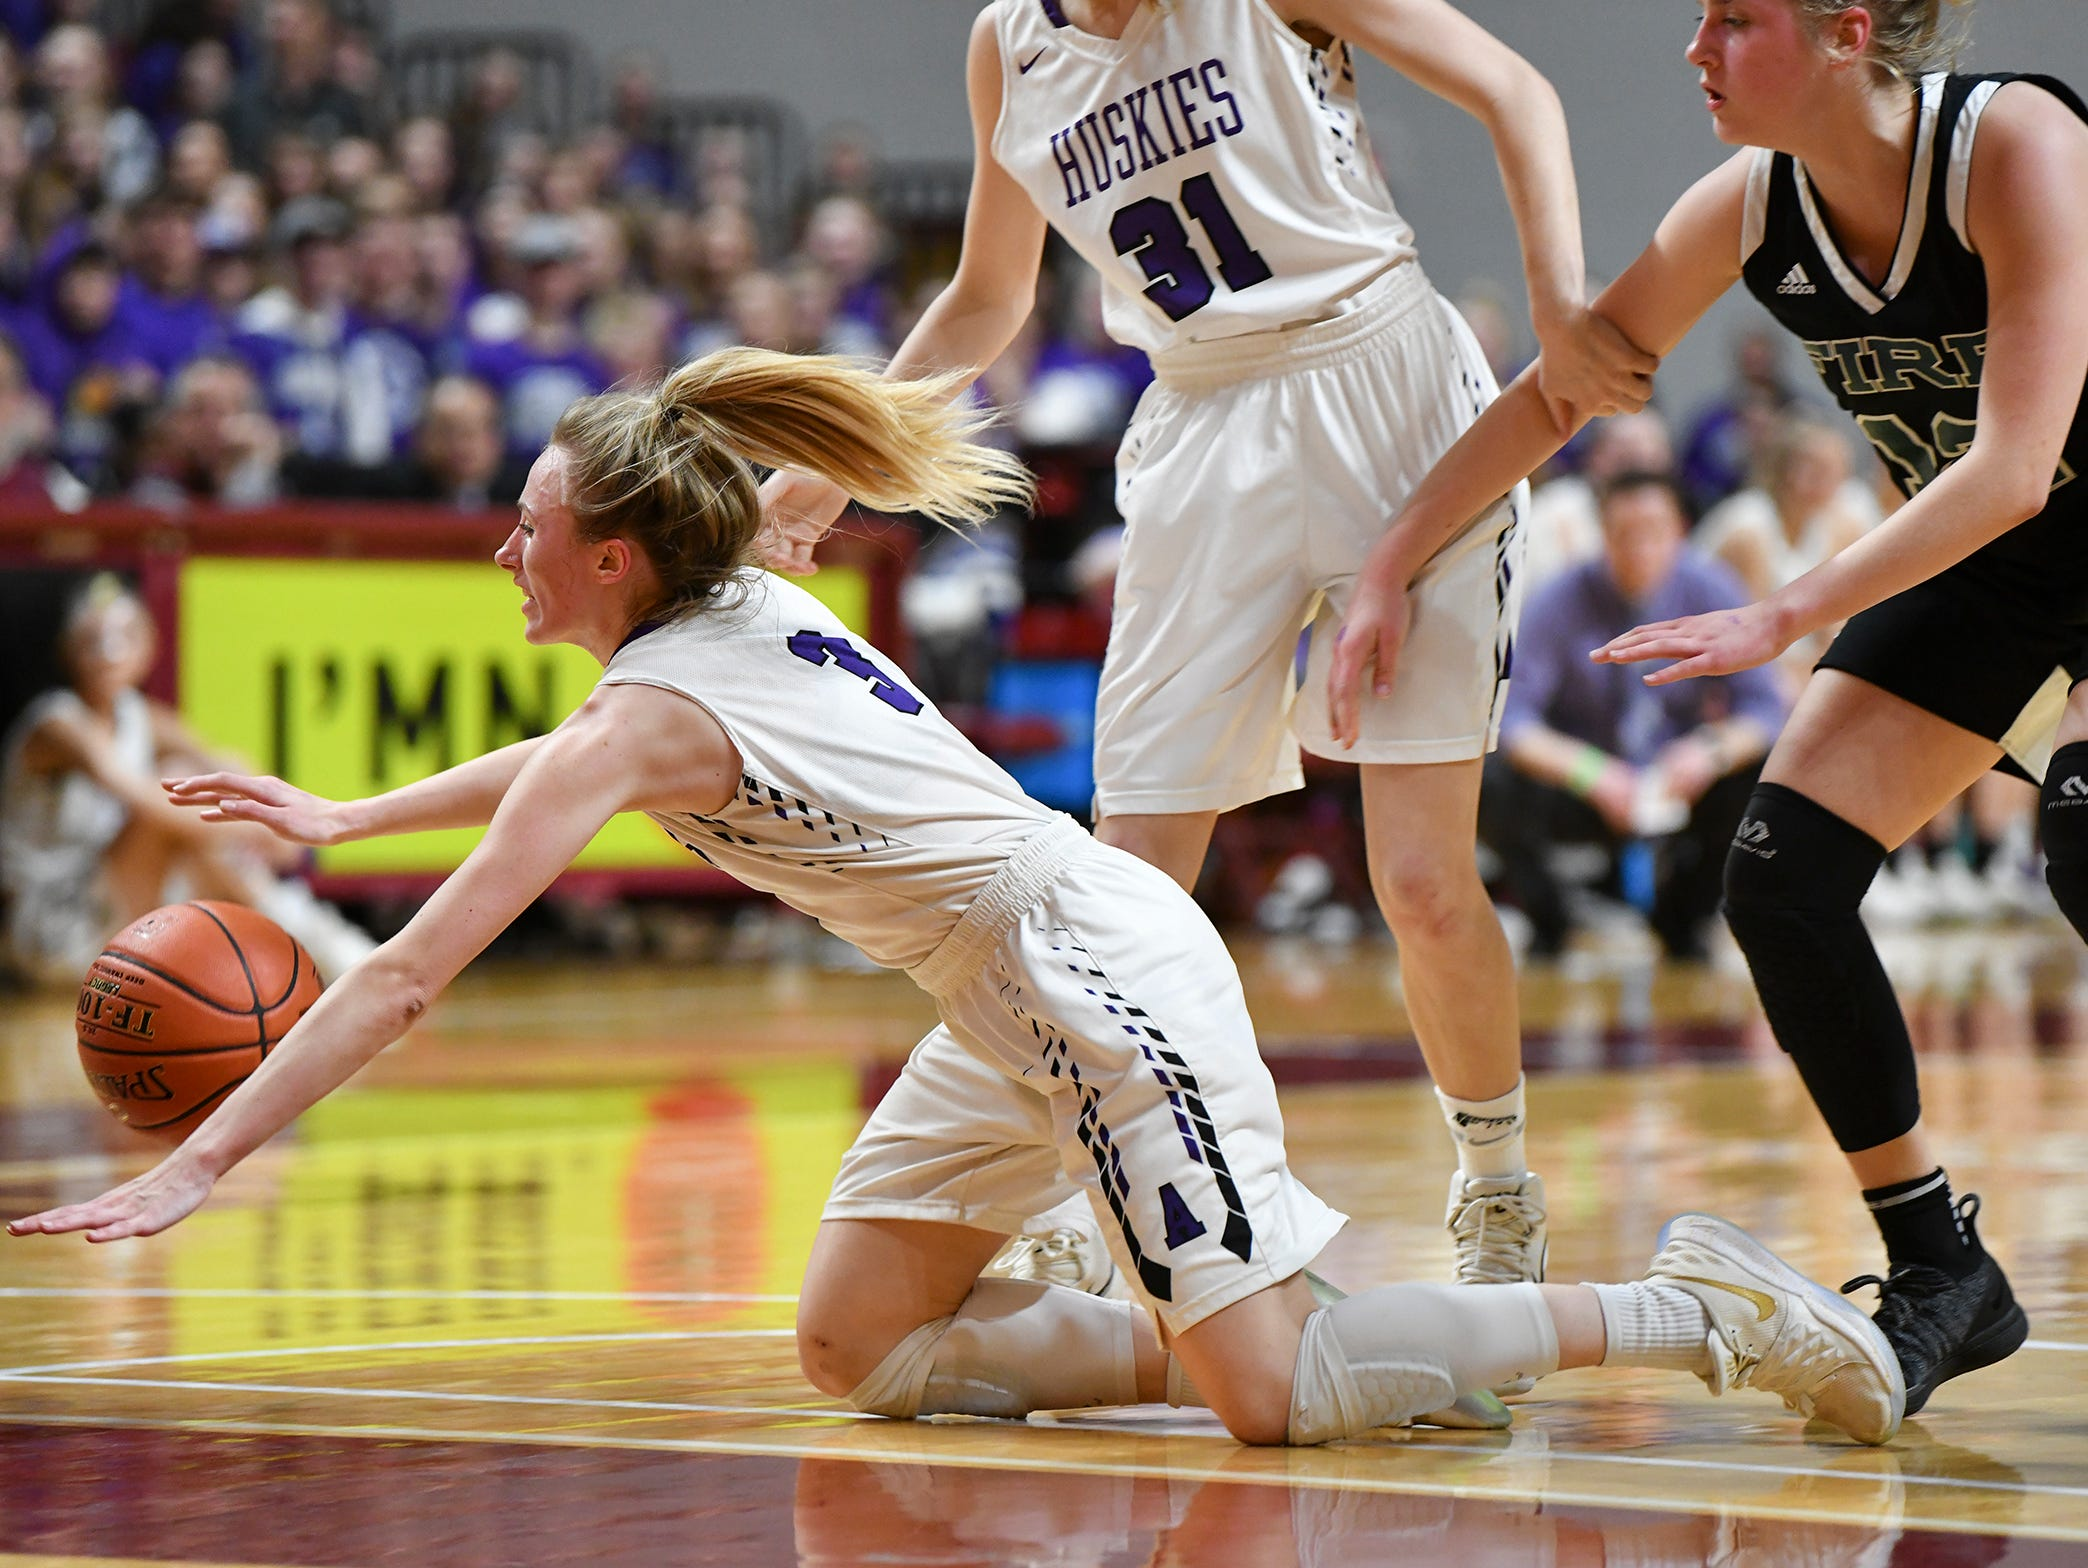 Hannah Litchy dives for a loose ball during the state Class 2A quarterfinals game Wednesday, March 13, at the University of Minnesota in Minneapolis.